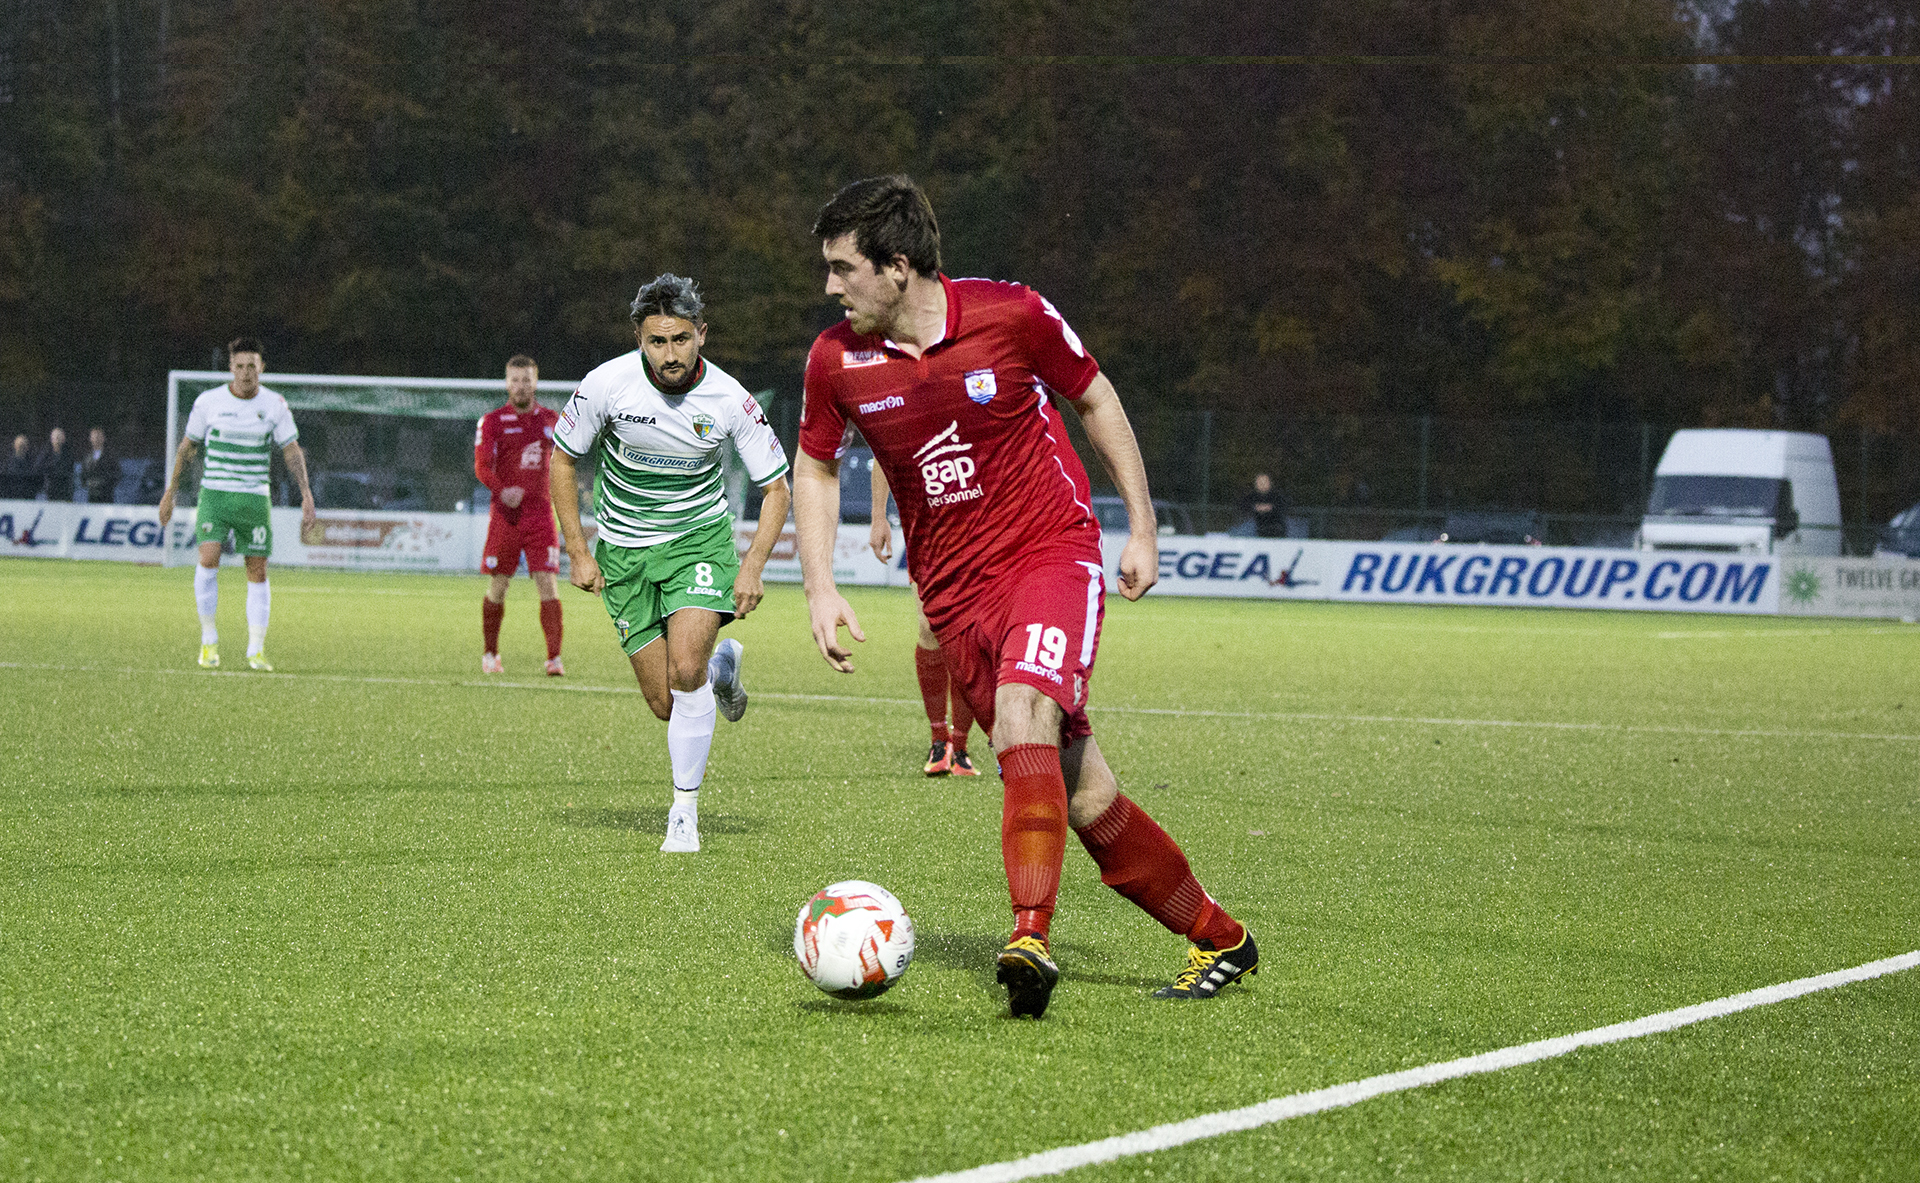 Matty Owen on the attack for The Nomads - © NCM Media